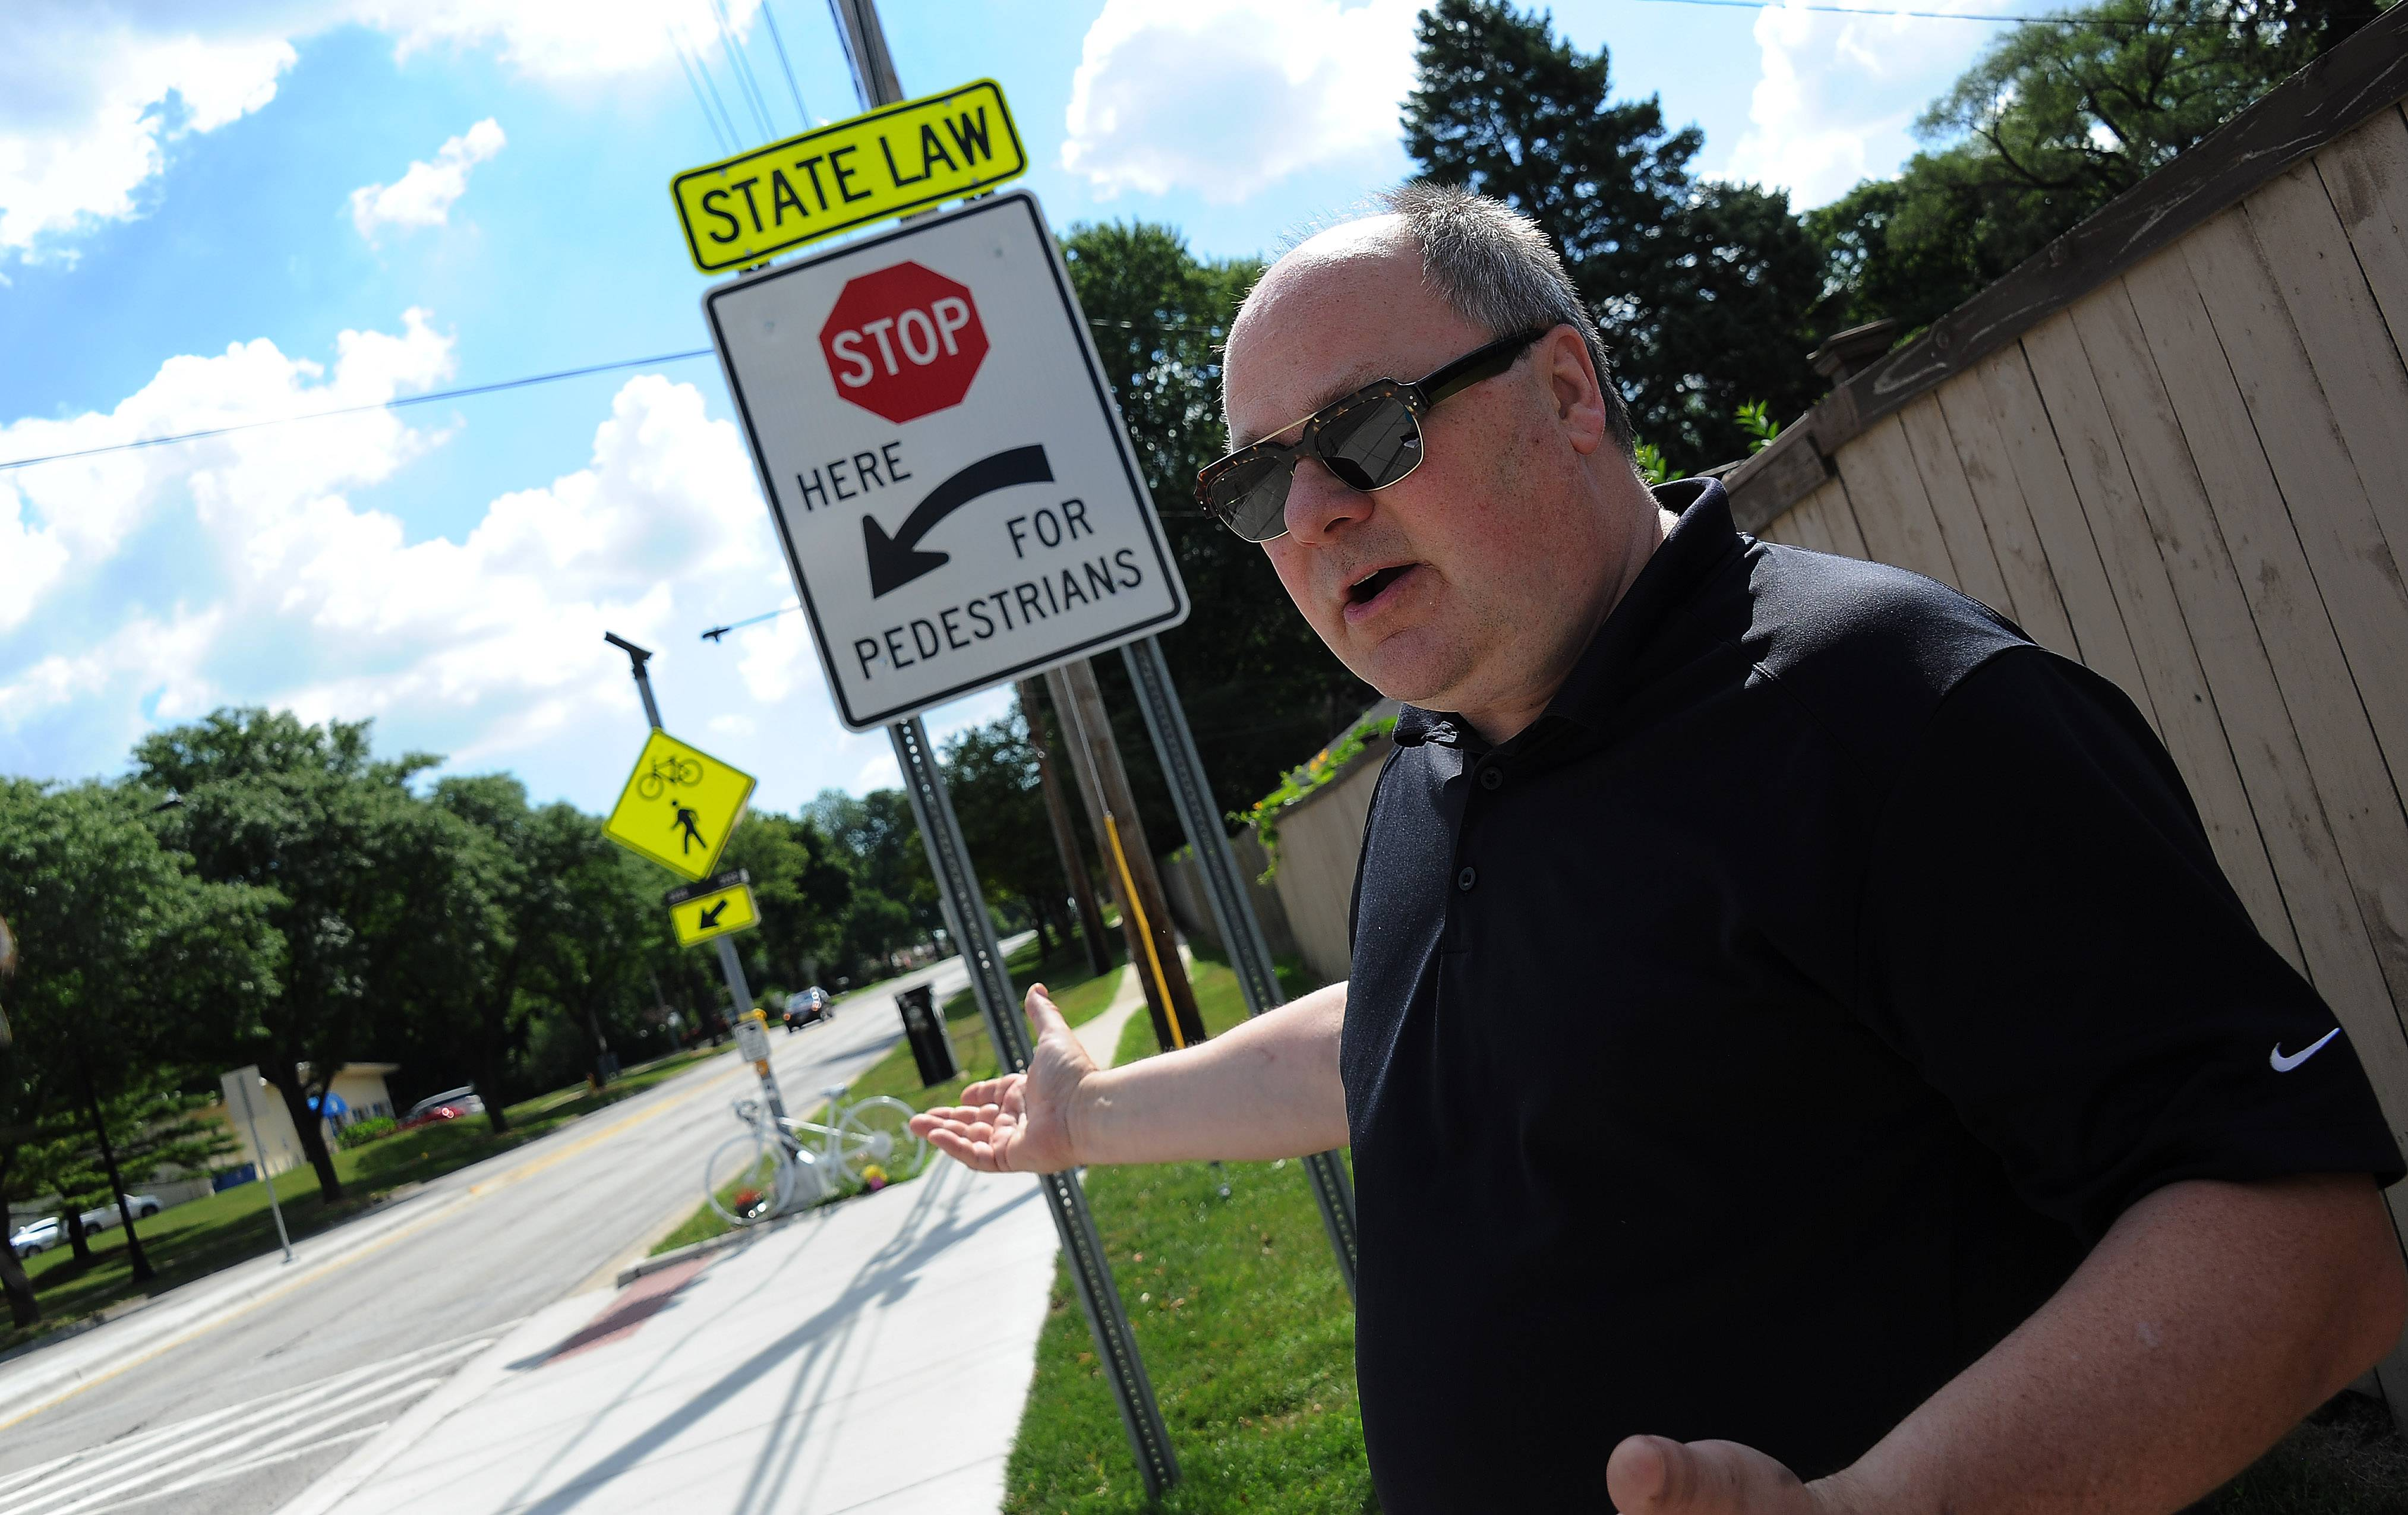 Mount Prospect cyclist's death prompts questions about crosswalk safety